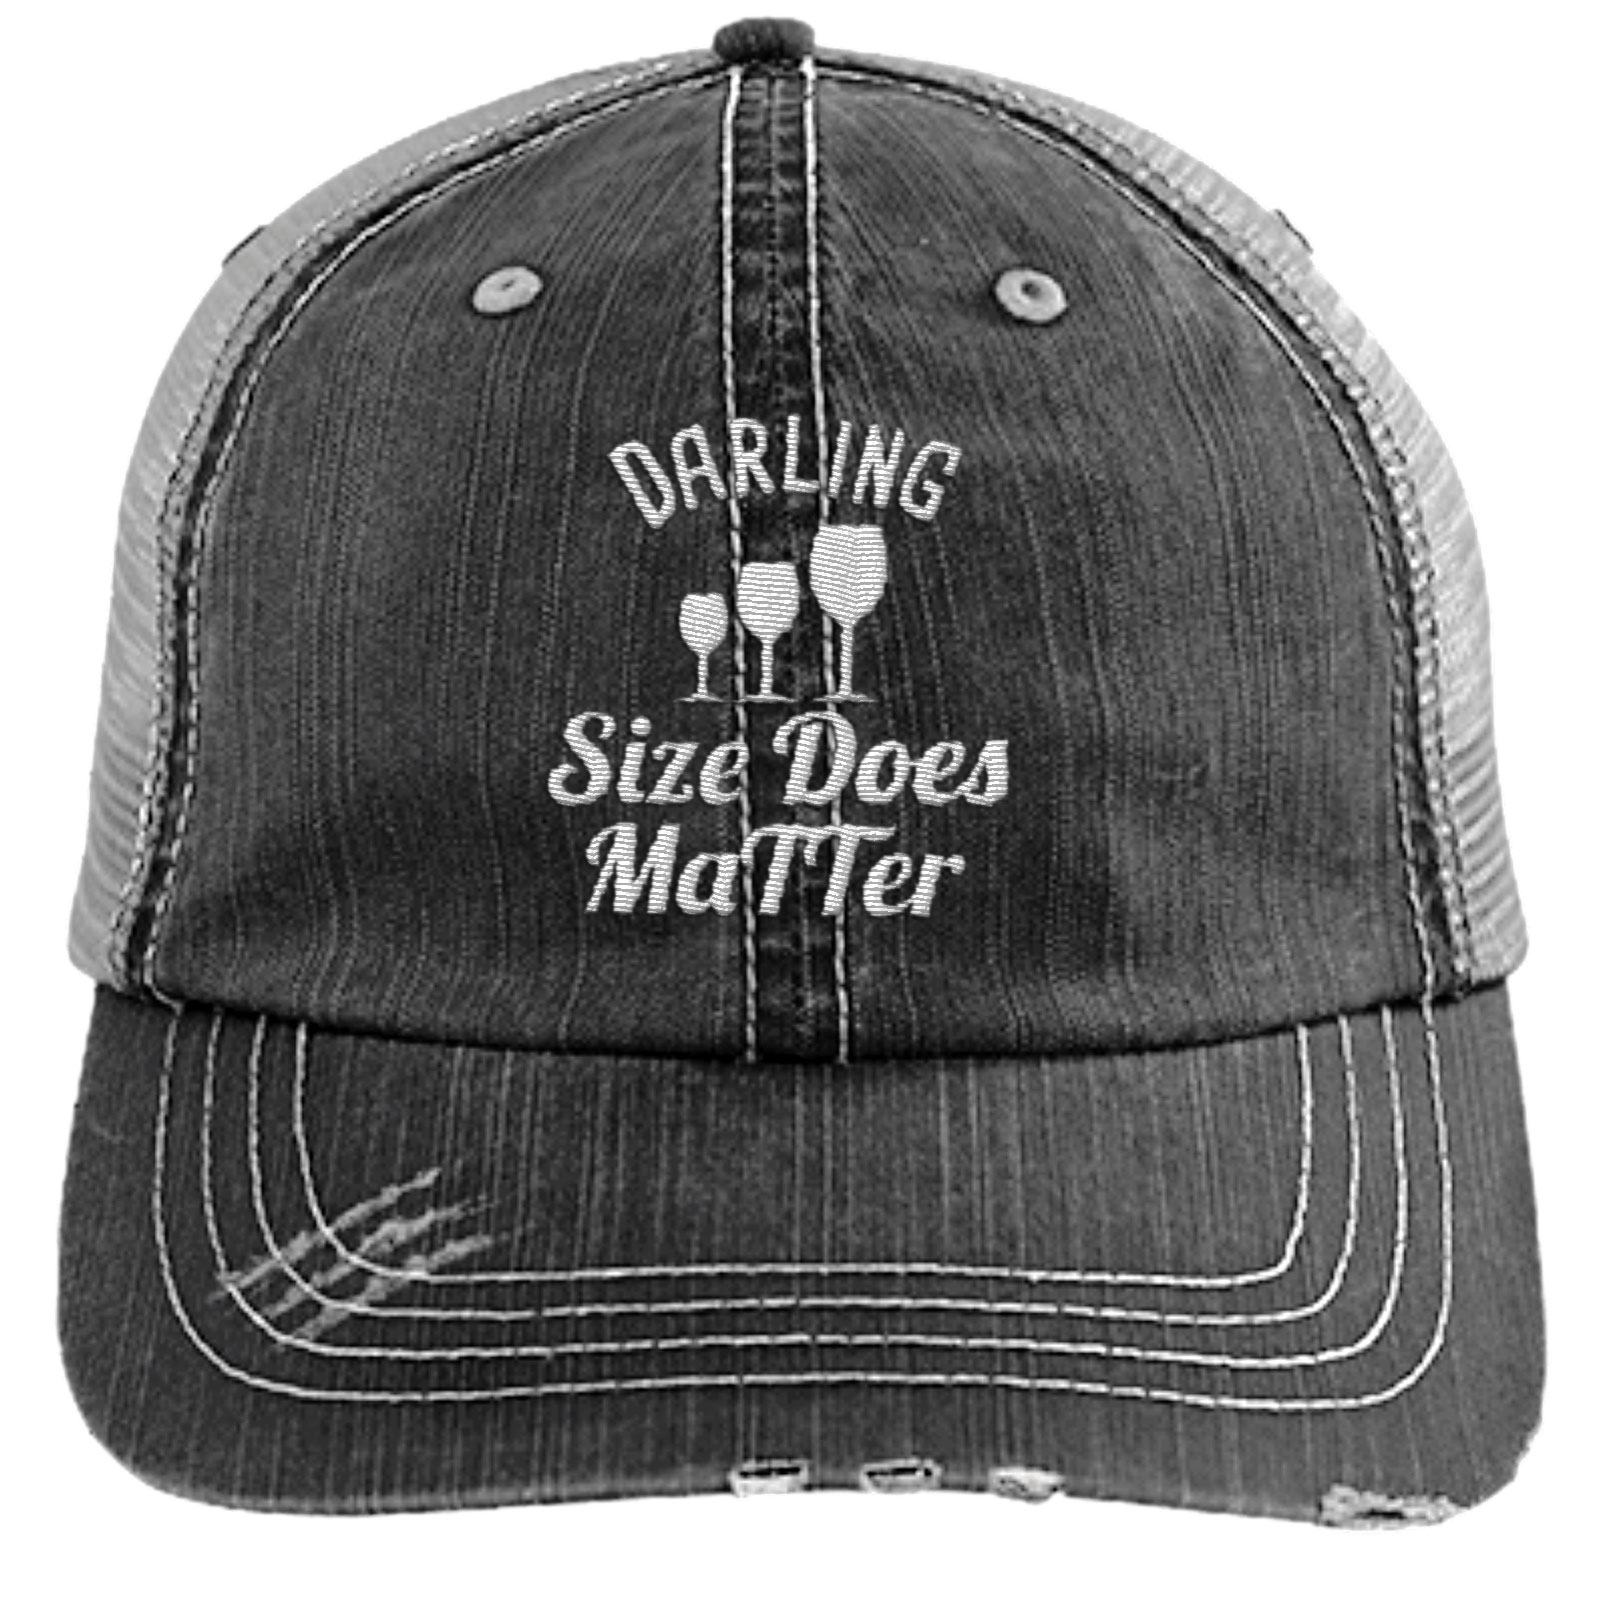 Darling Size Does Matter Distressed Trucker Cap (Mesh Back)